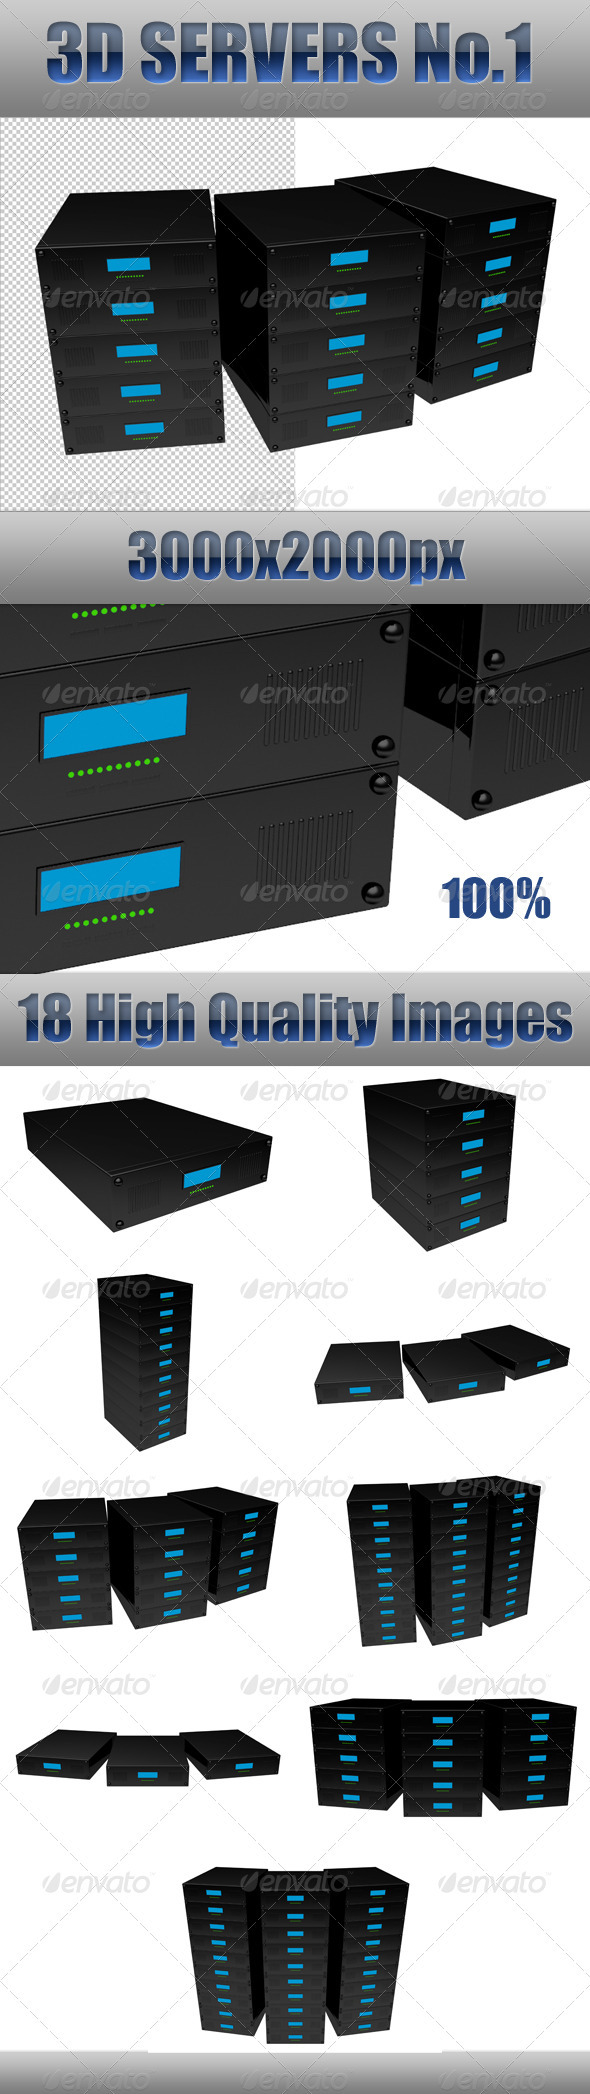 3D Servers No. 1 - 3D Renders Graphics